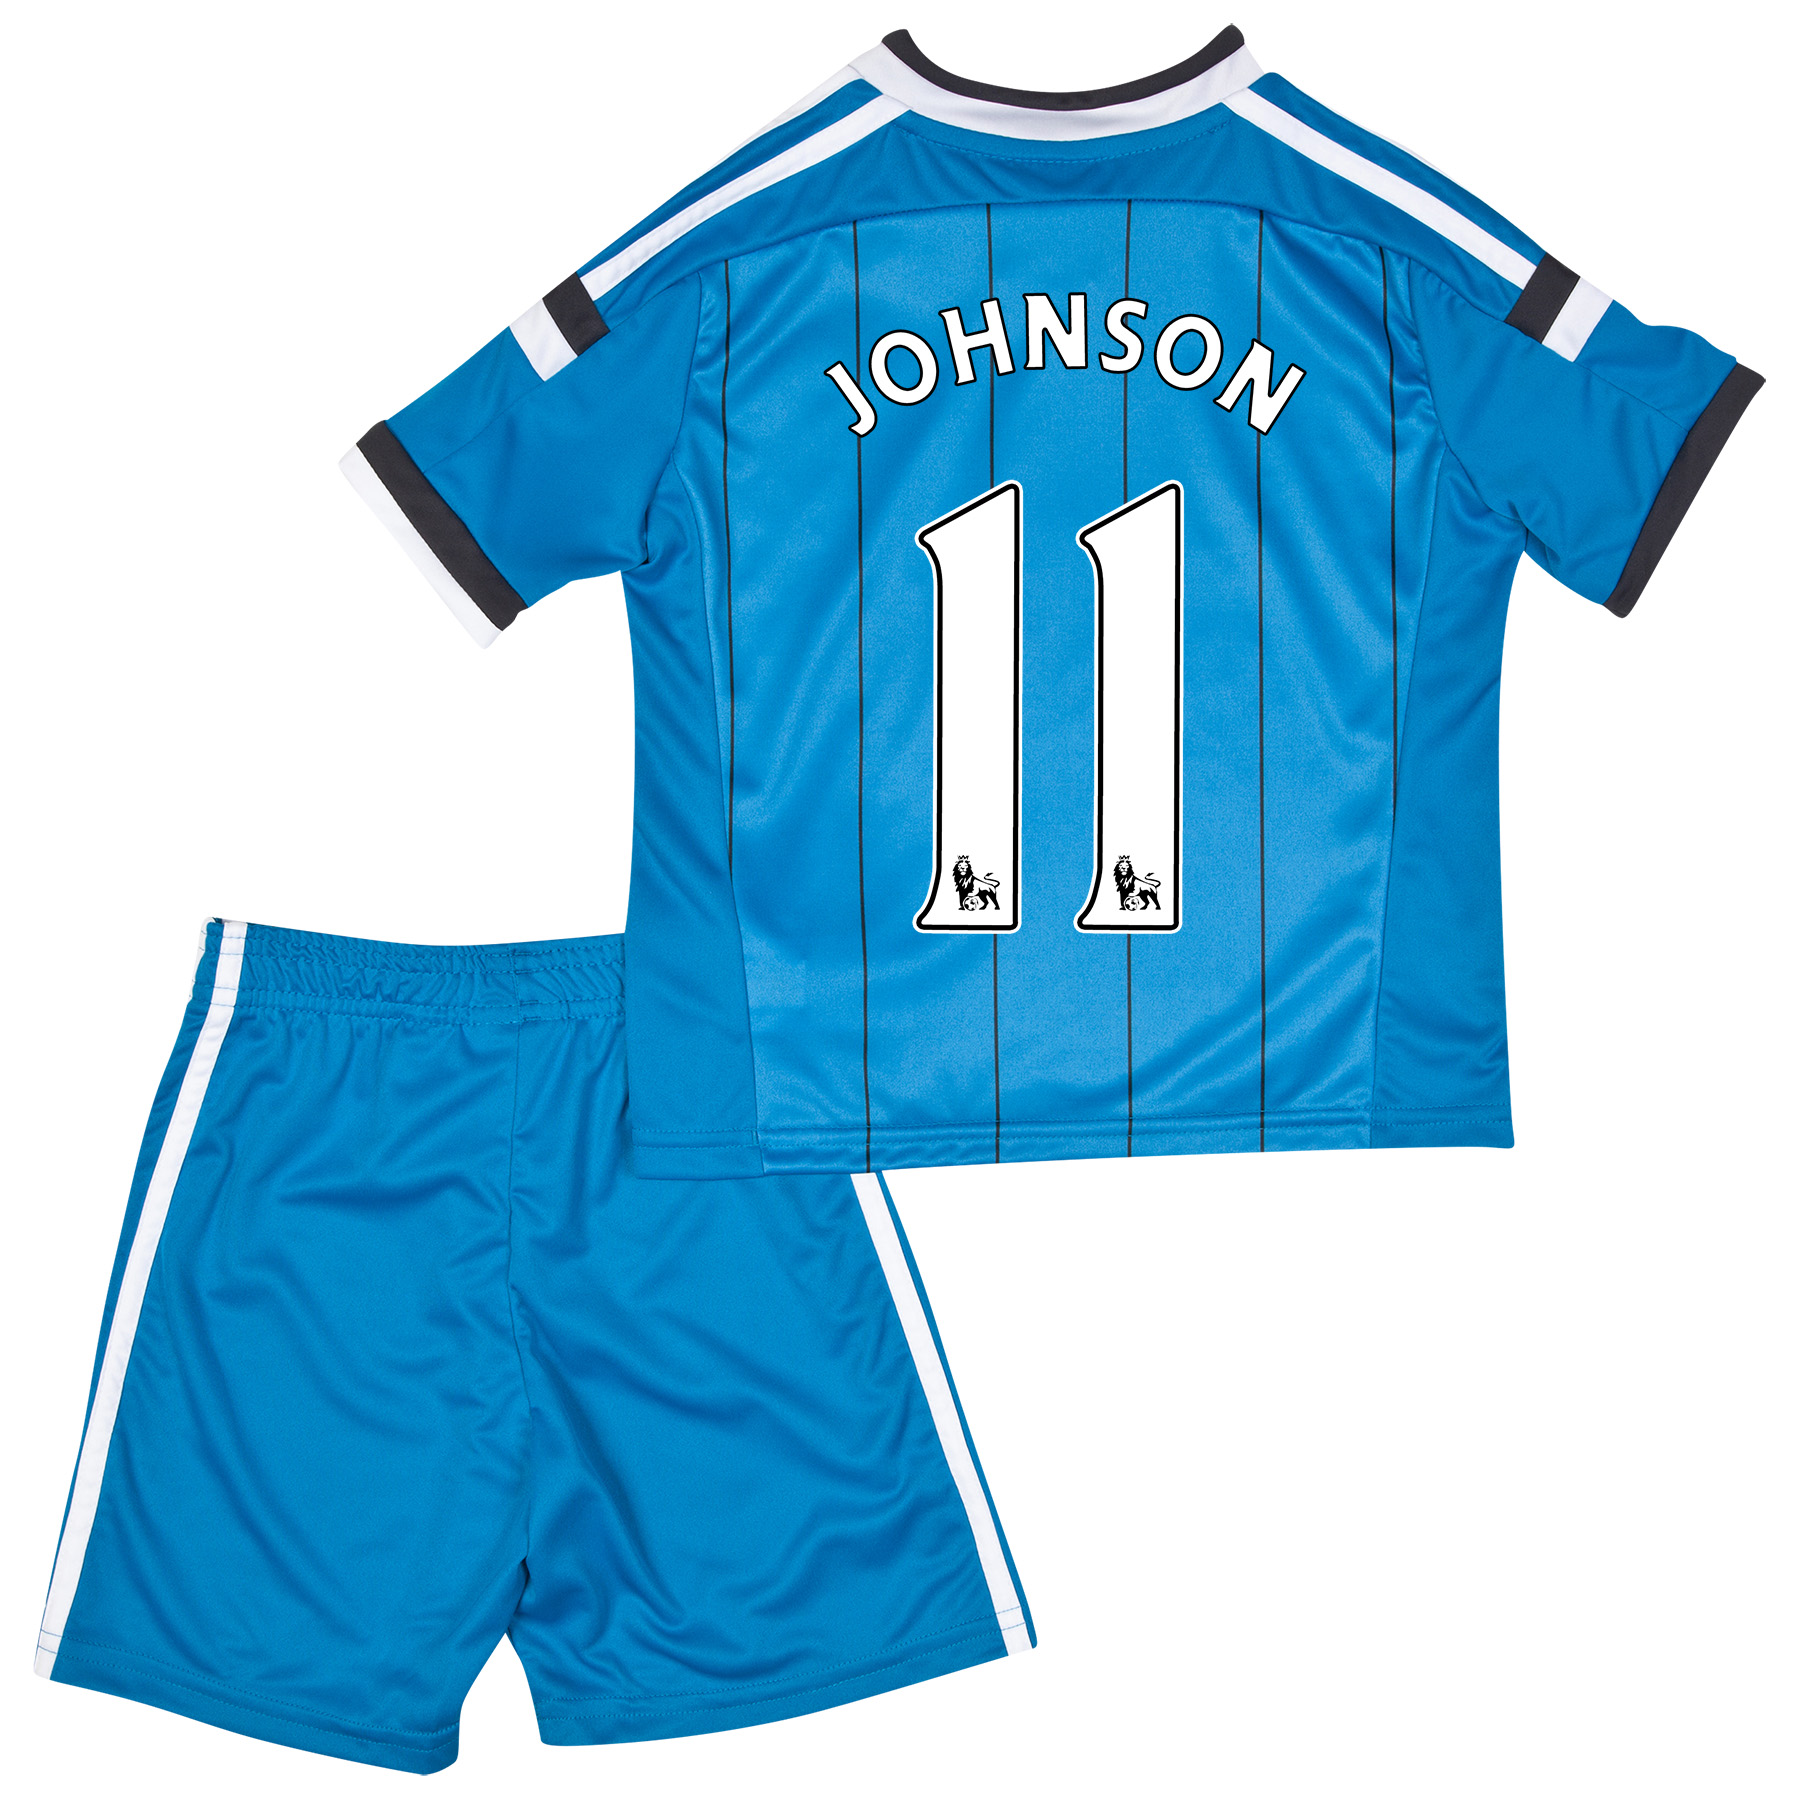 Sunderland Away Mini Kit 2014/15 Lt Blue with Johnson 11 printing